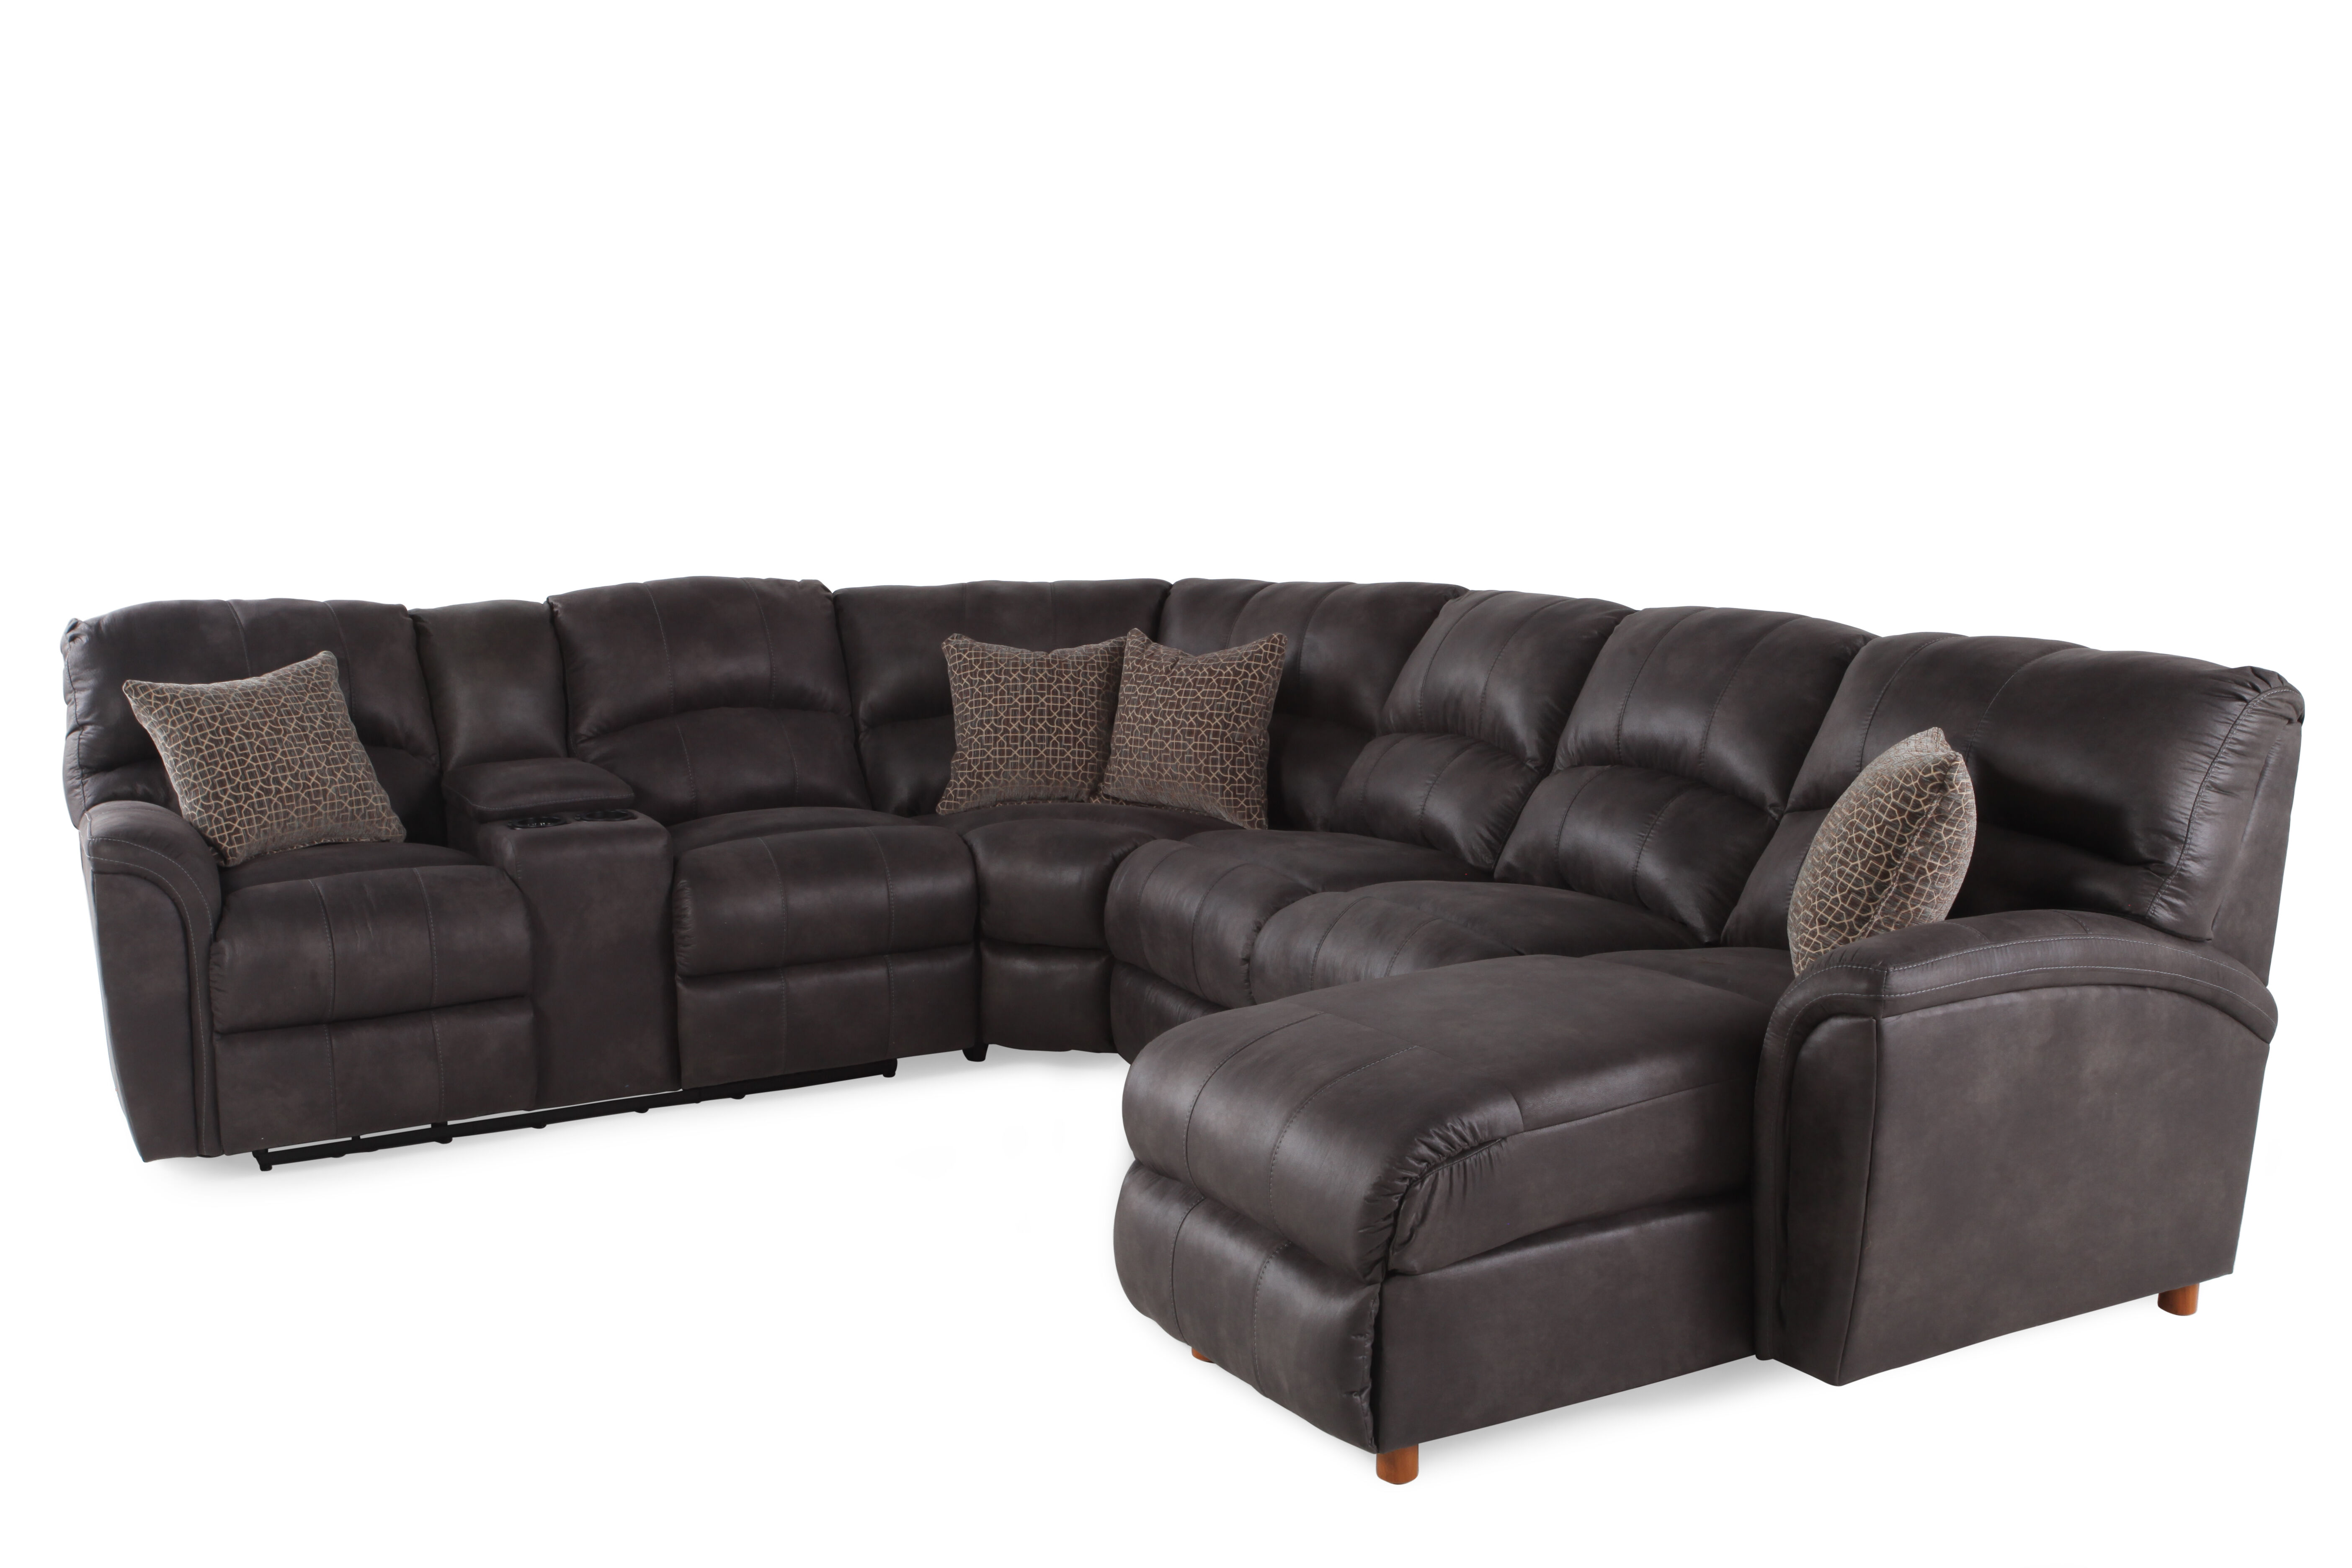 Lane Grand Torino Grey Sectional  sc 1 st  Mathis Brothers : lane grand torino sectional - Sectionals, Sofas & Couches